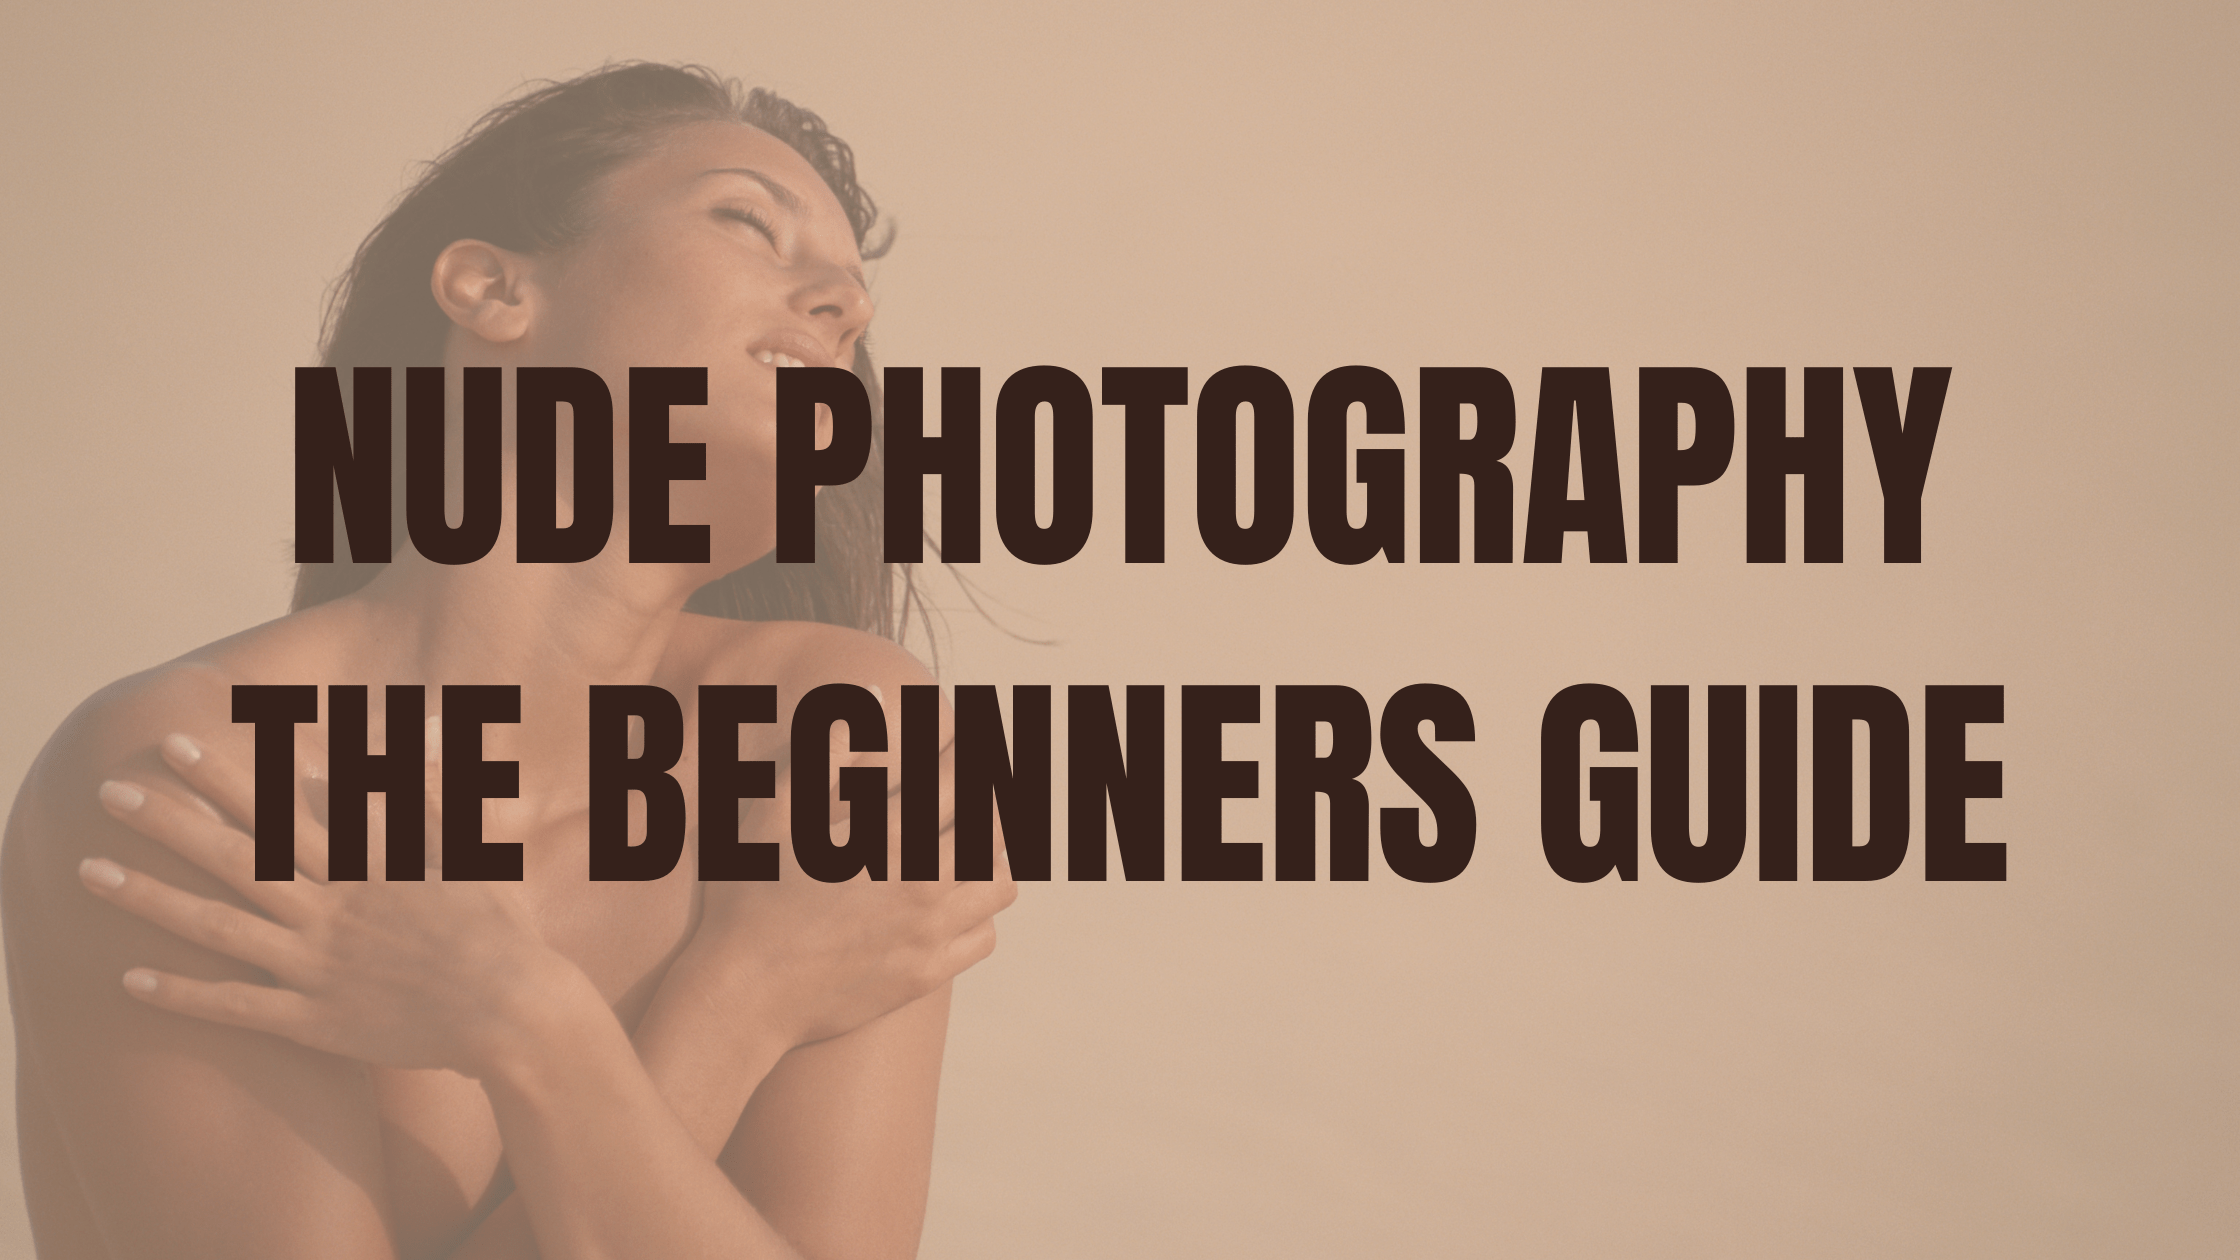 Nude Photography: The Beginners Guide (7 Things to Remember)